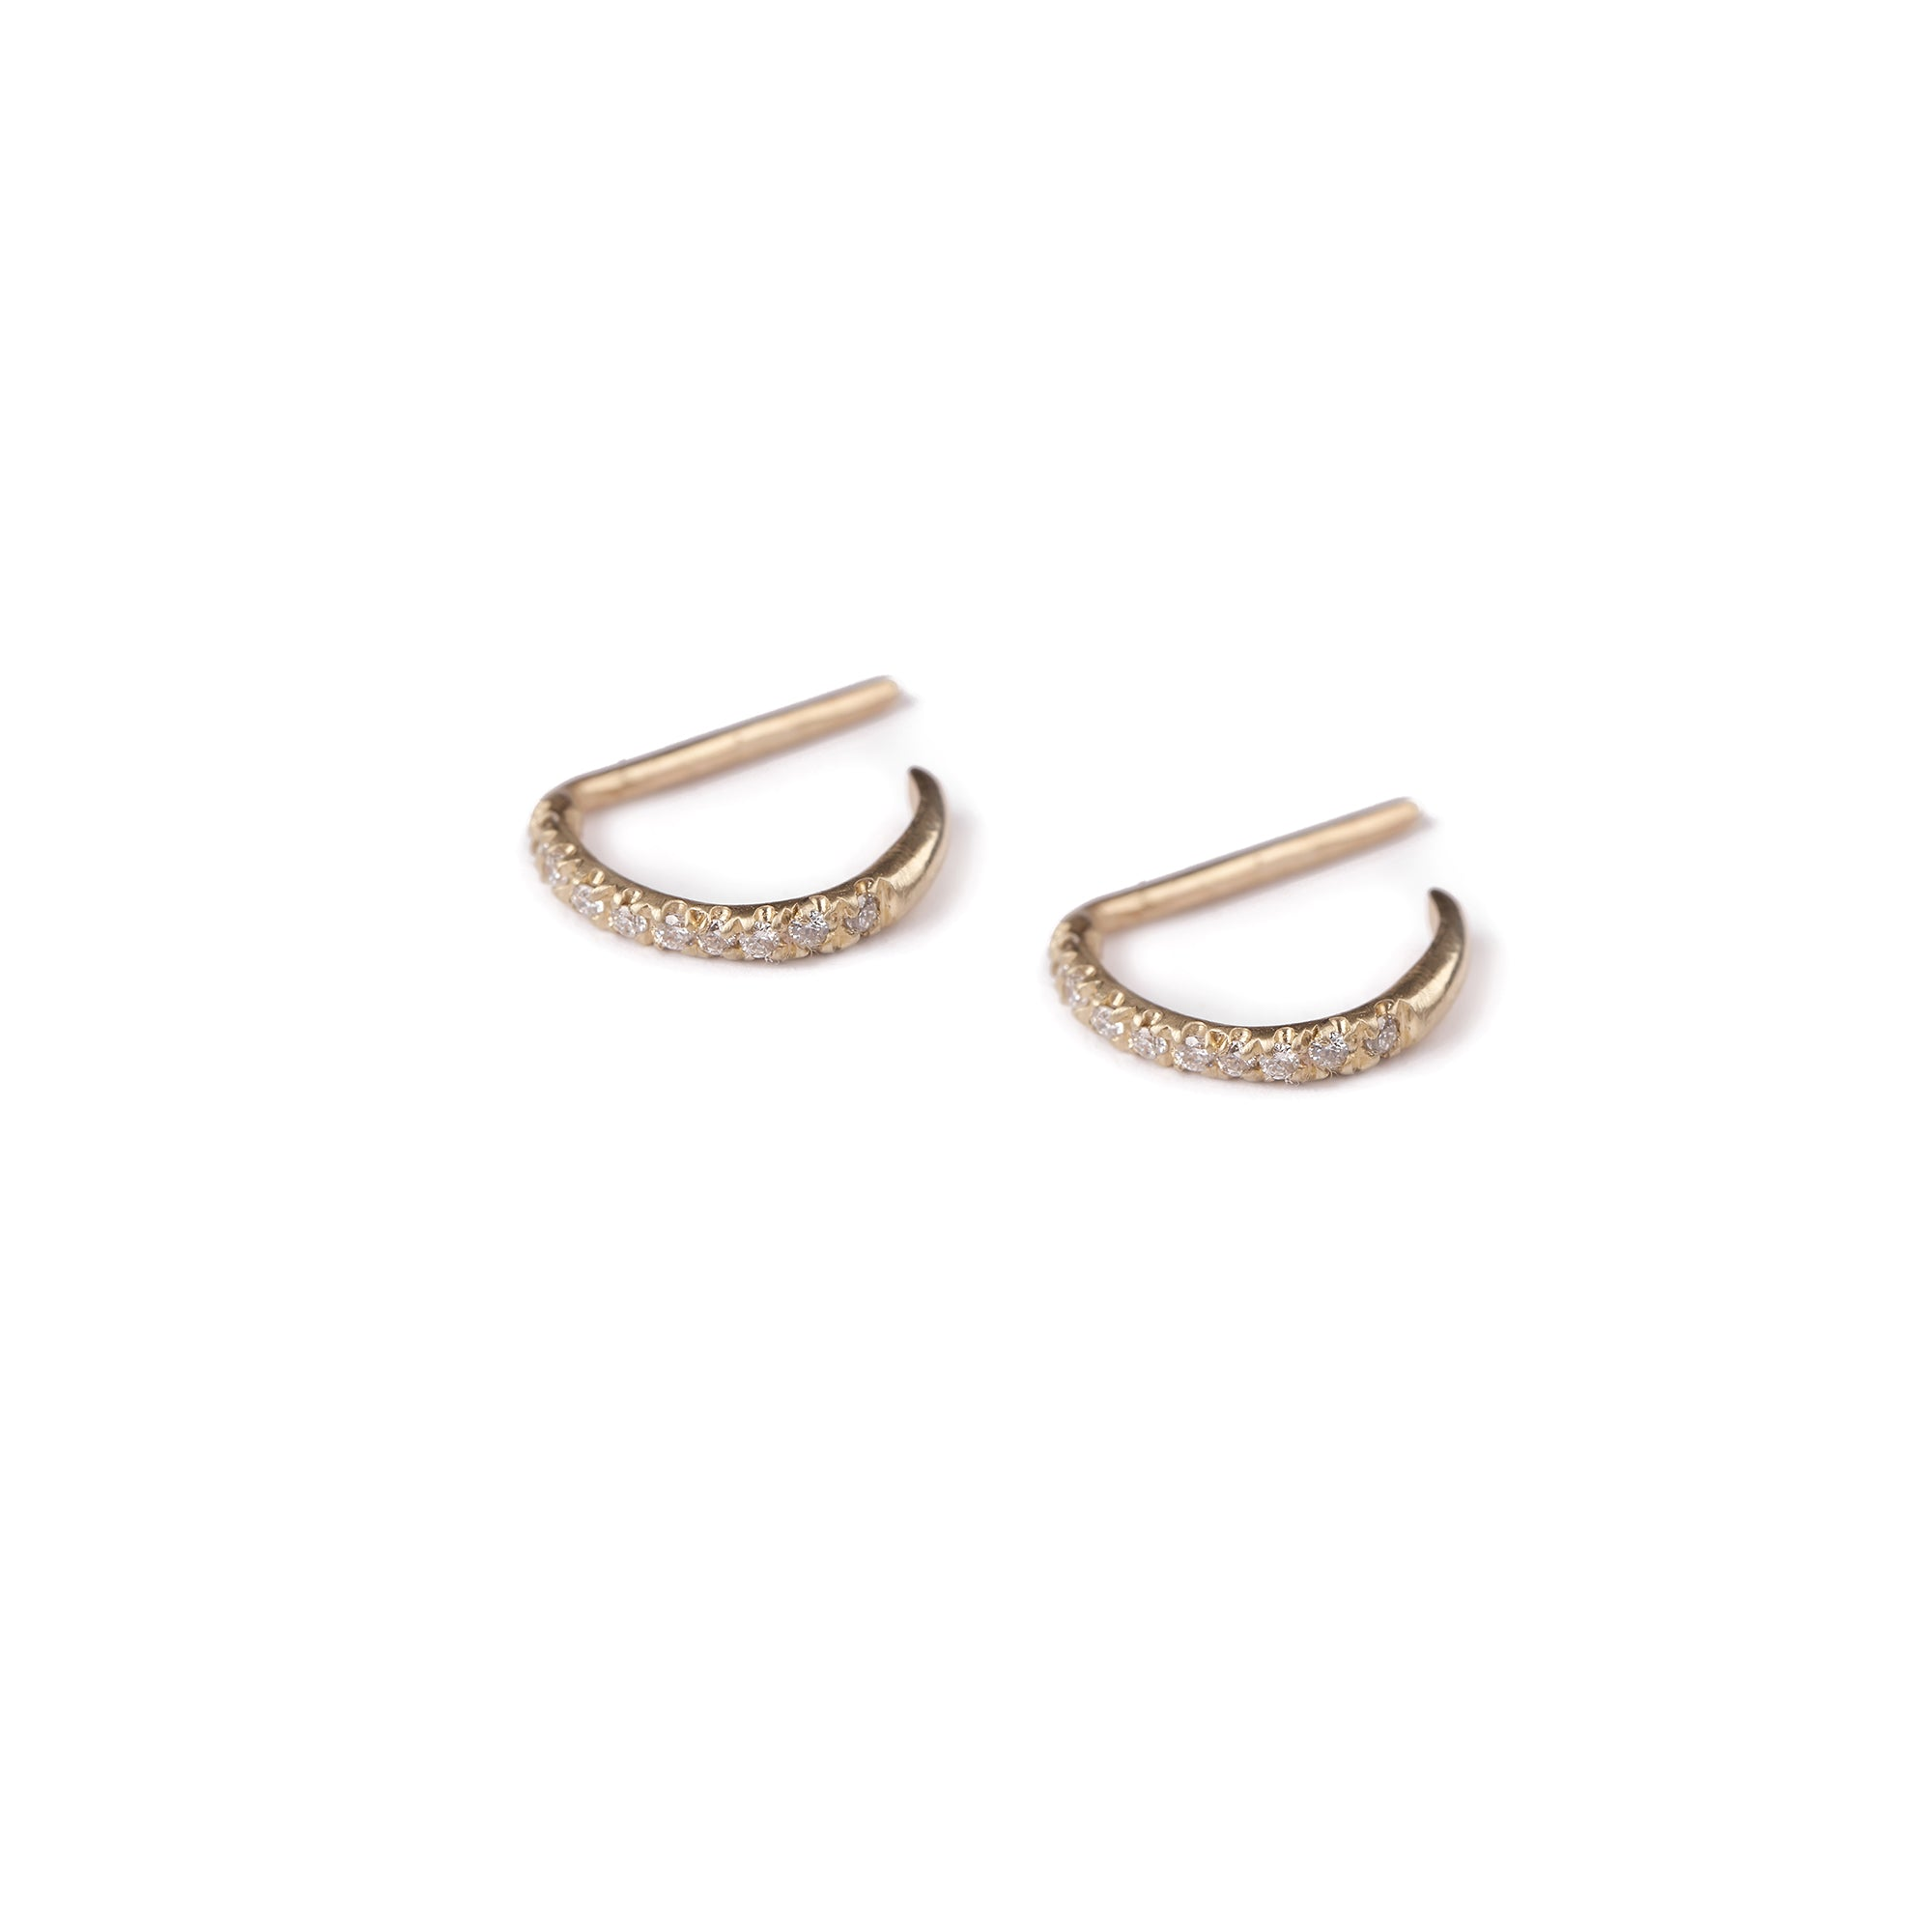 14k gold open hoop earrings with diamonds